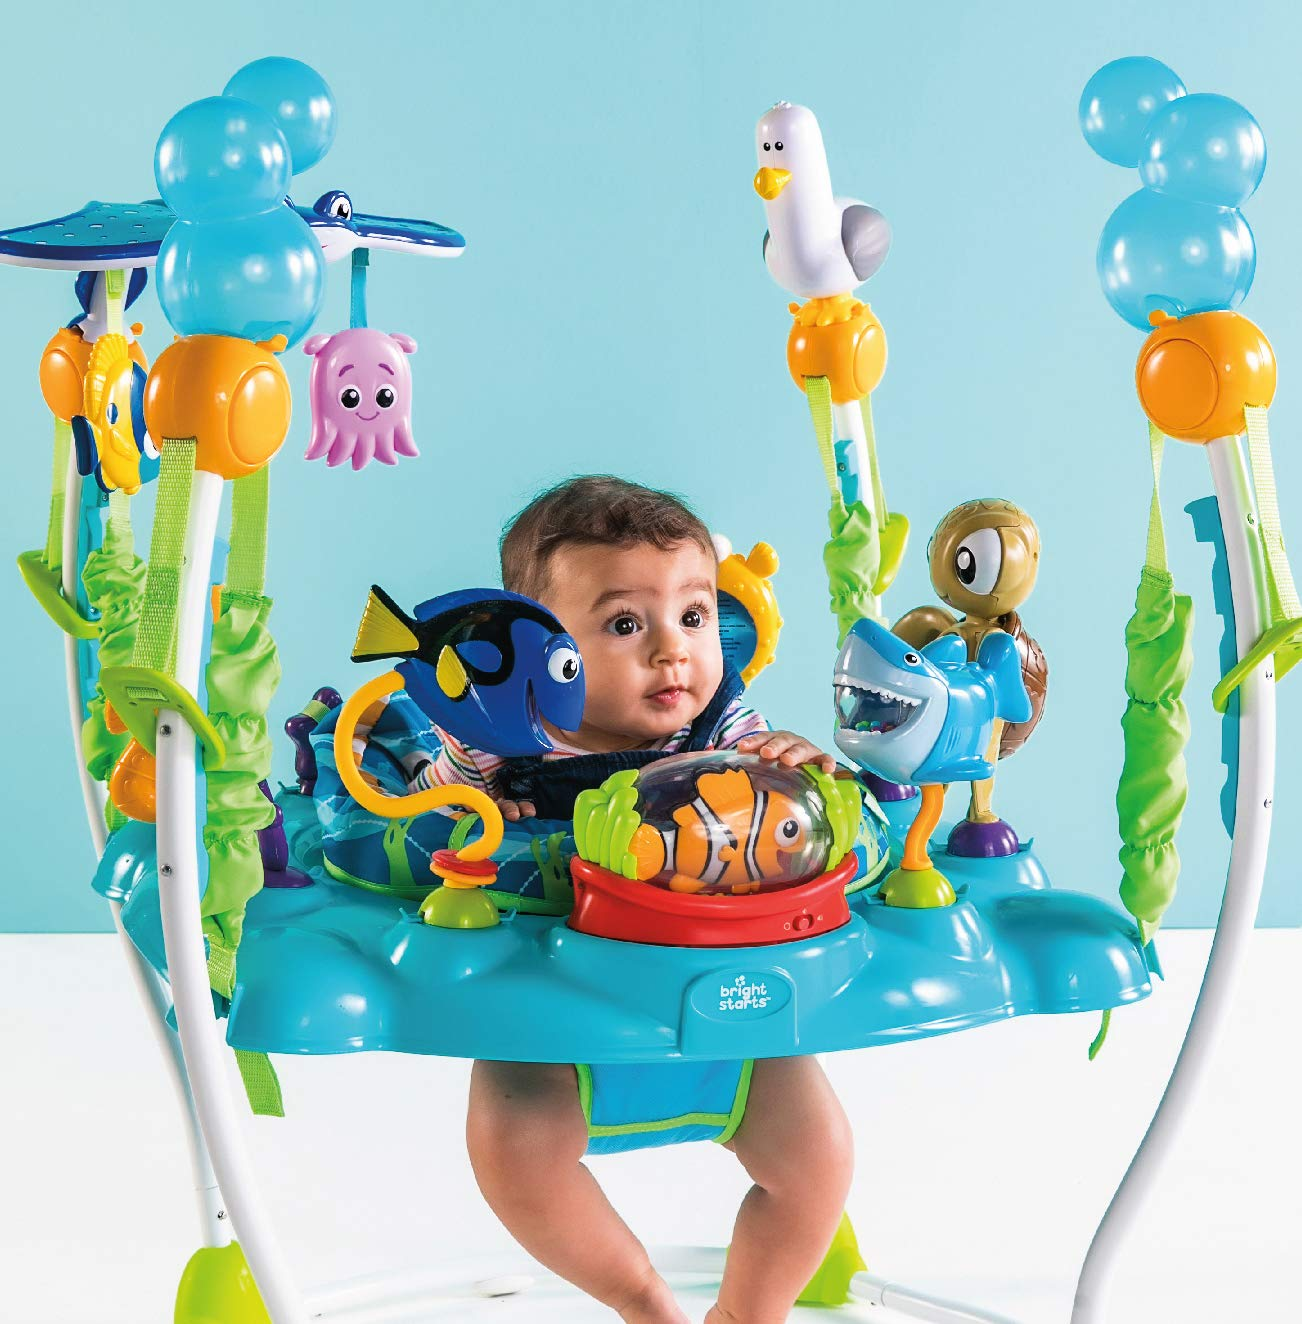 Toys Bright Starts Disney Baby Finding Nemo Oh Sea Activities Jumperoo (DISKON – Tanpa Mainan Gantung Ikan Pari)